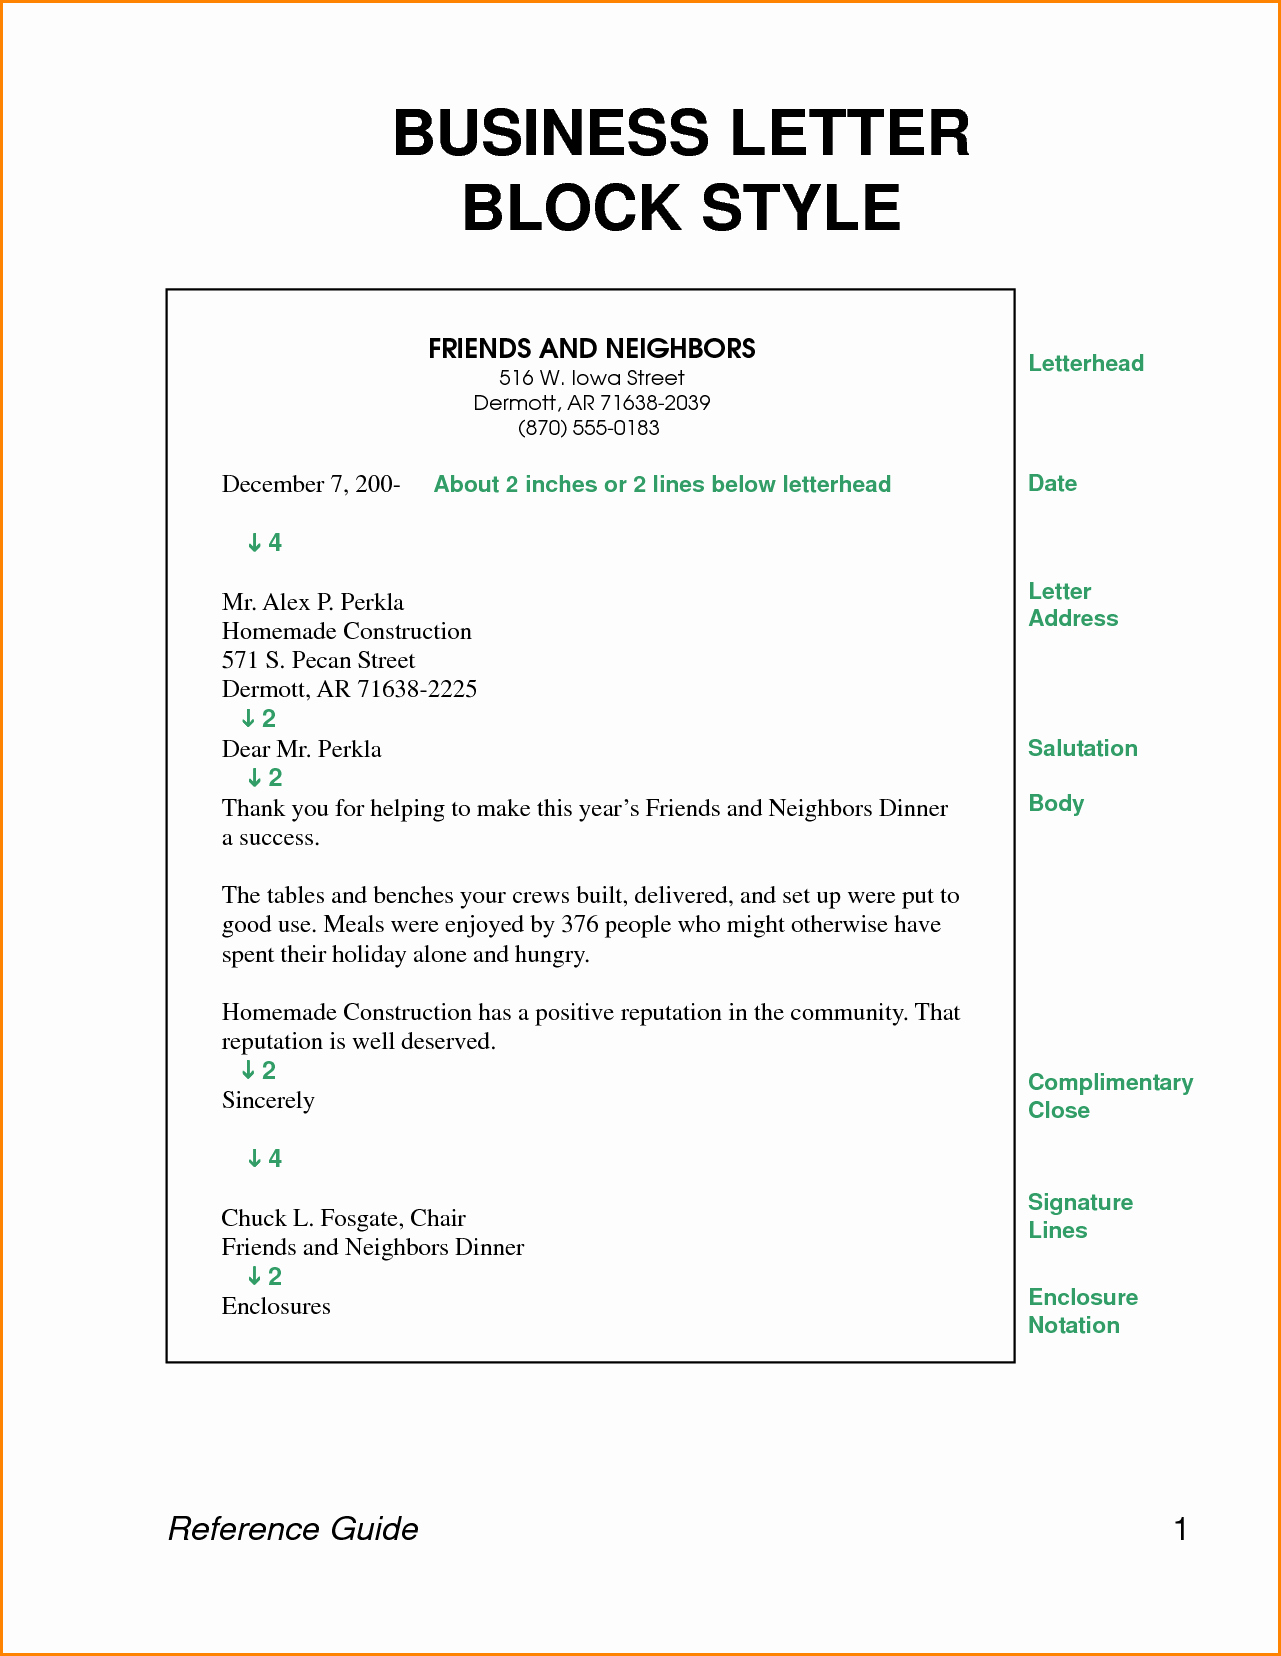 Free Business Letter Template Word Luxury Business Letter Block Style Letters format Free